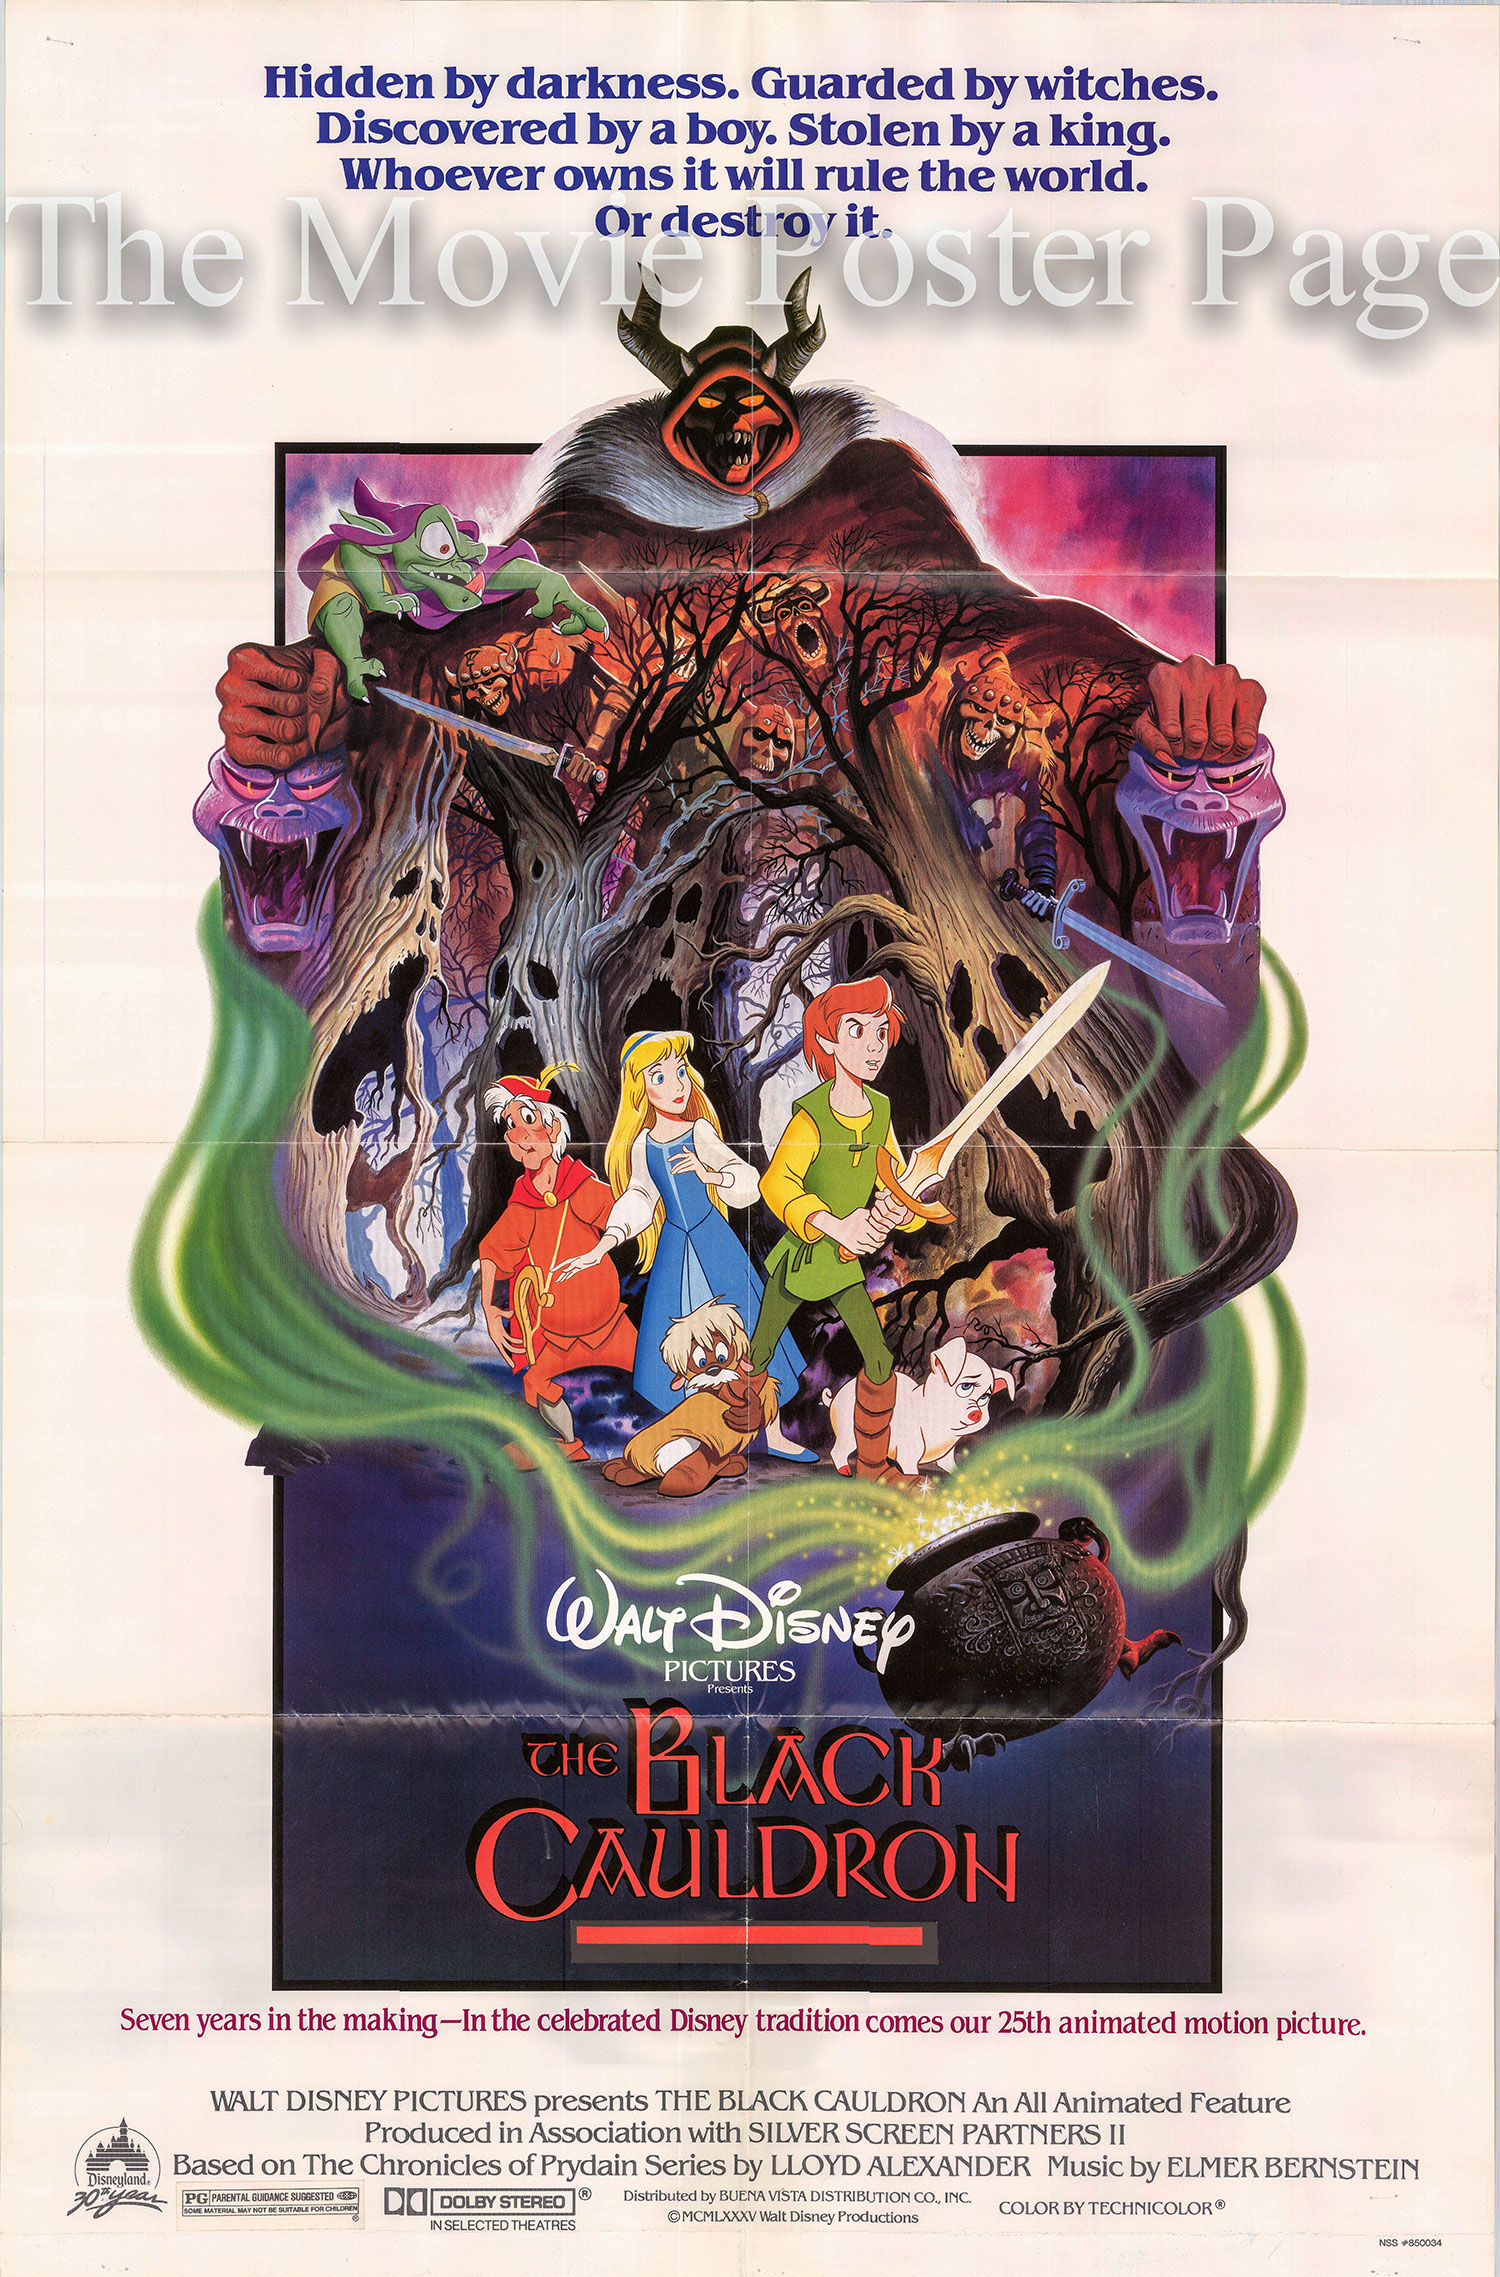 Pictured is a US one-sheet poster for the 1985 Ted Berman and Richard Rich film The Black Cauldron, starring Grant Bardsley as the voice of Taran.